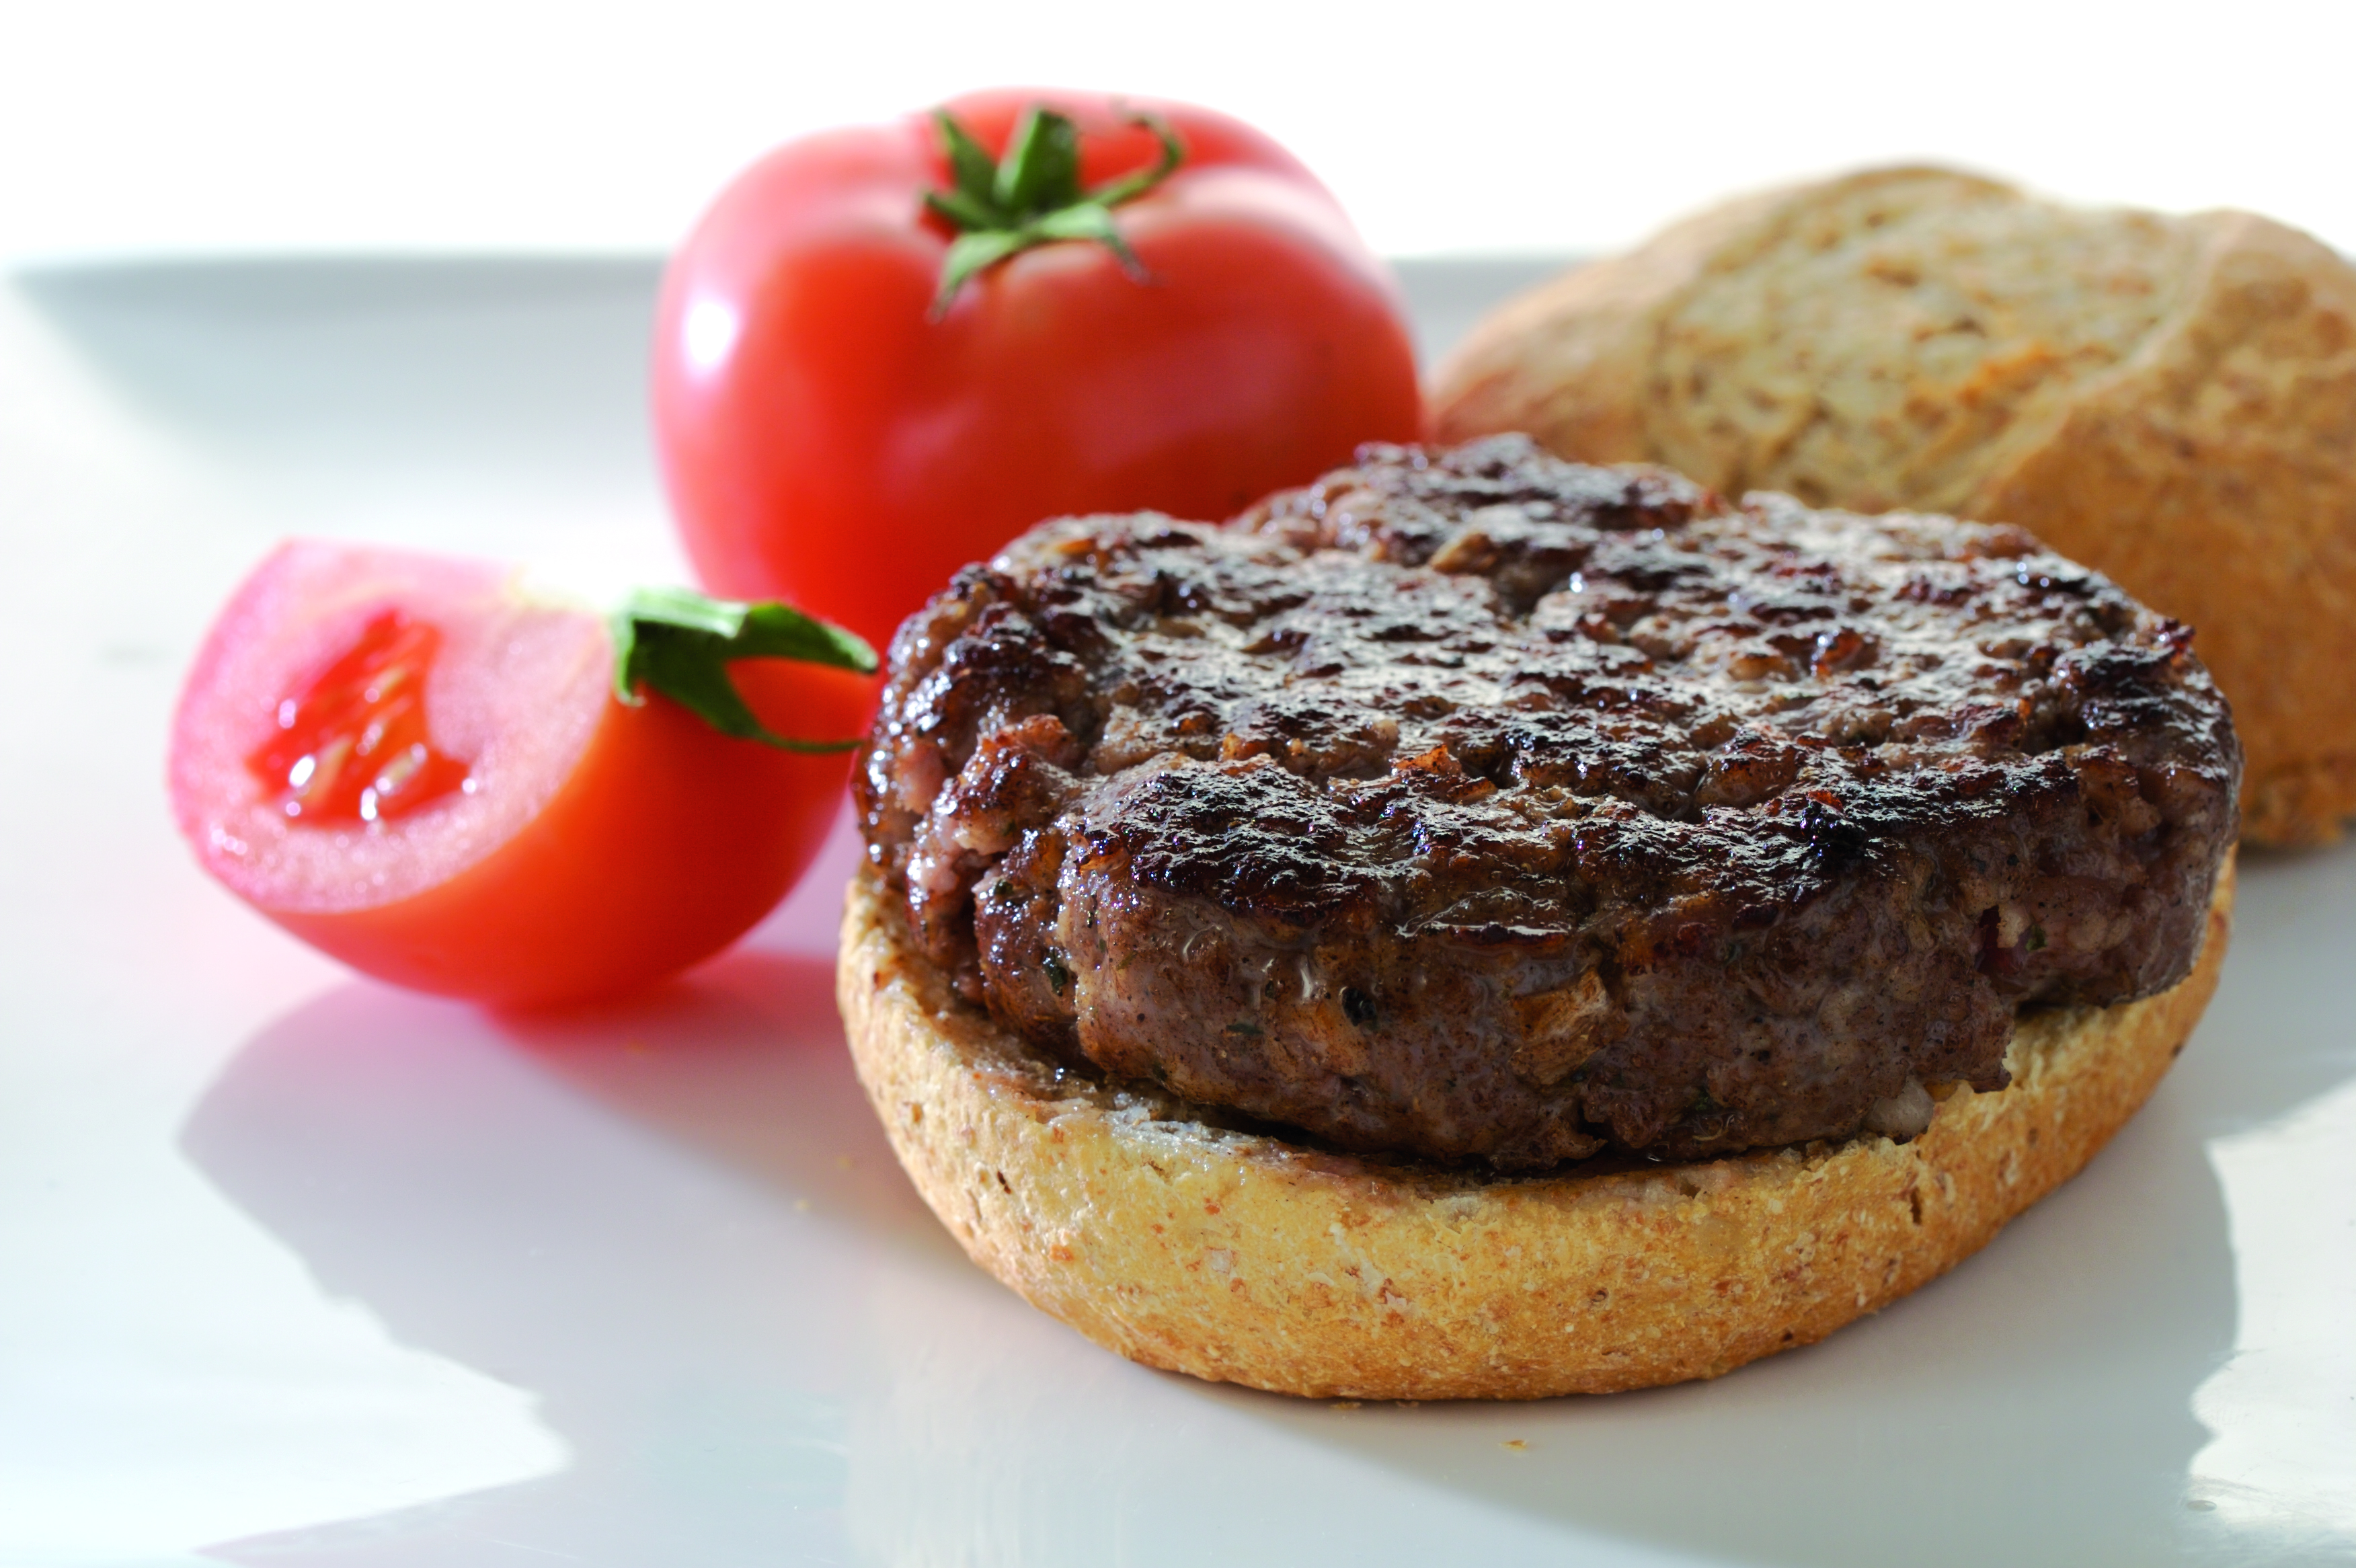 GOURMET MOZZARELLA AND BACON BURGERS